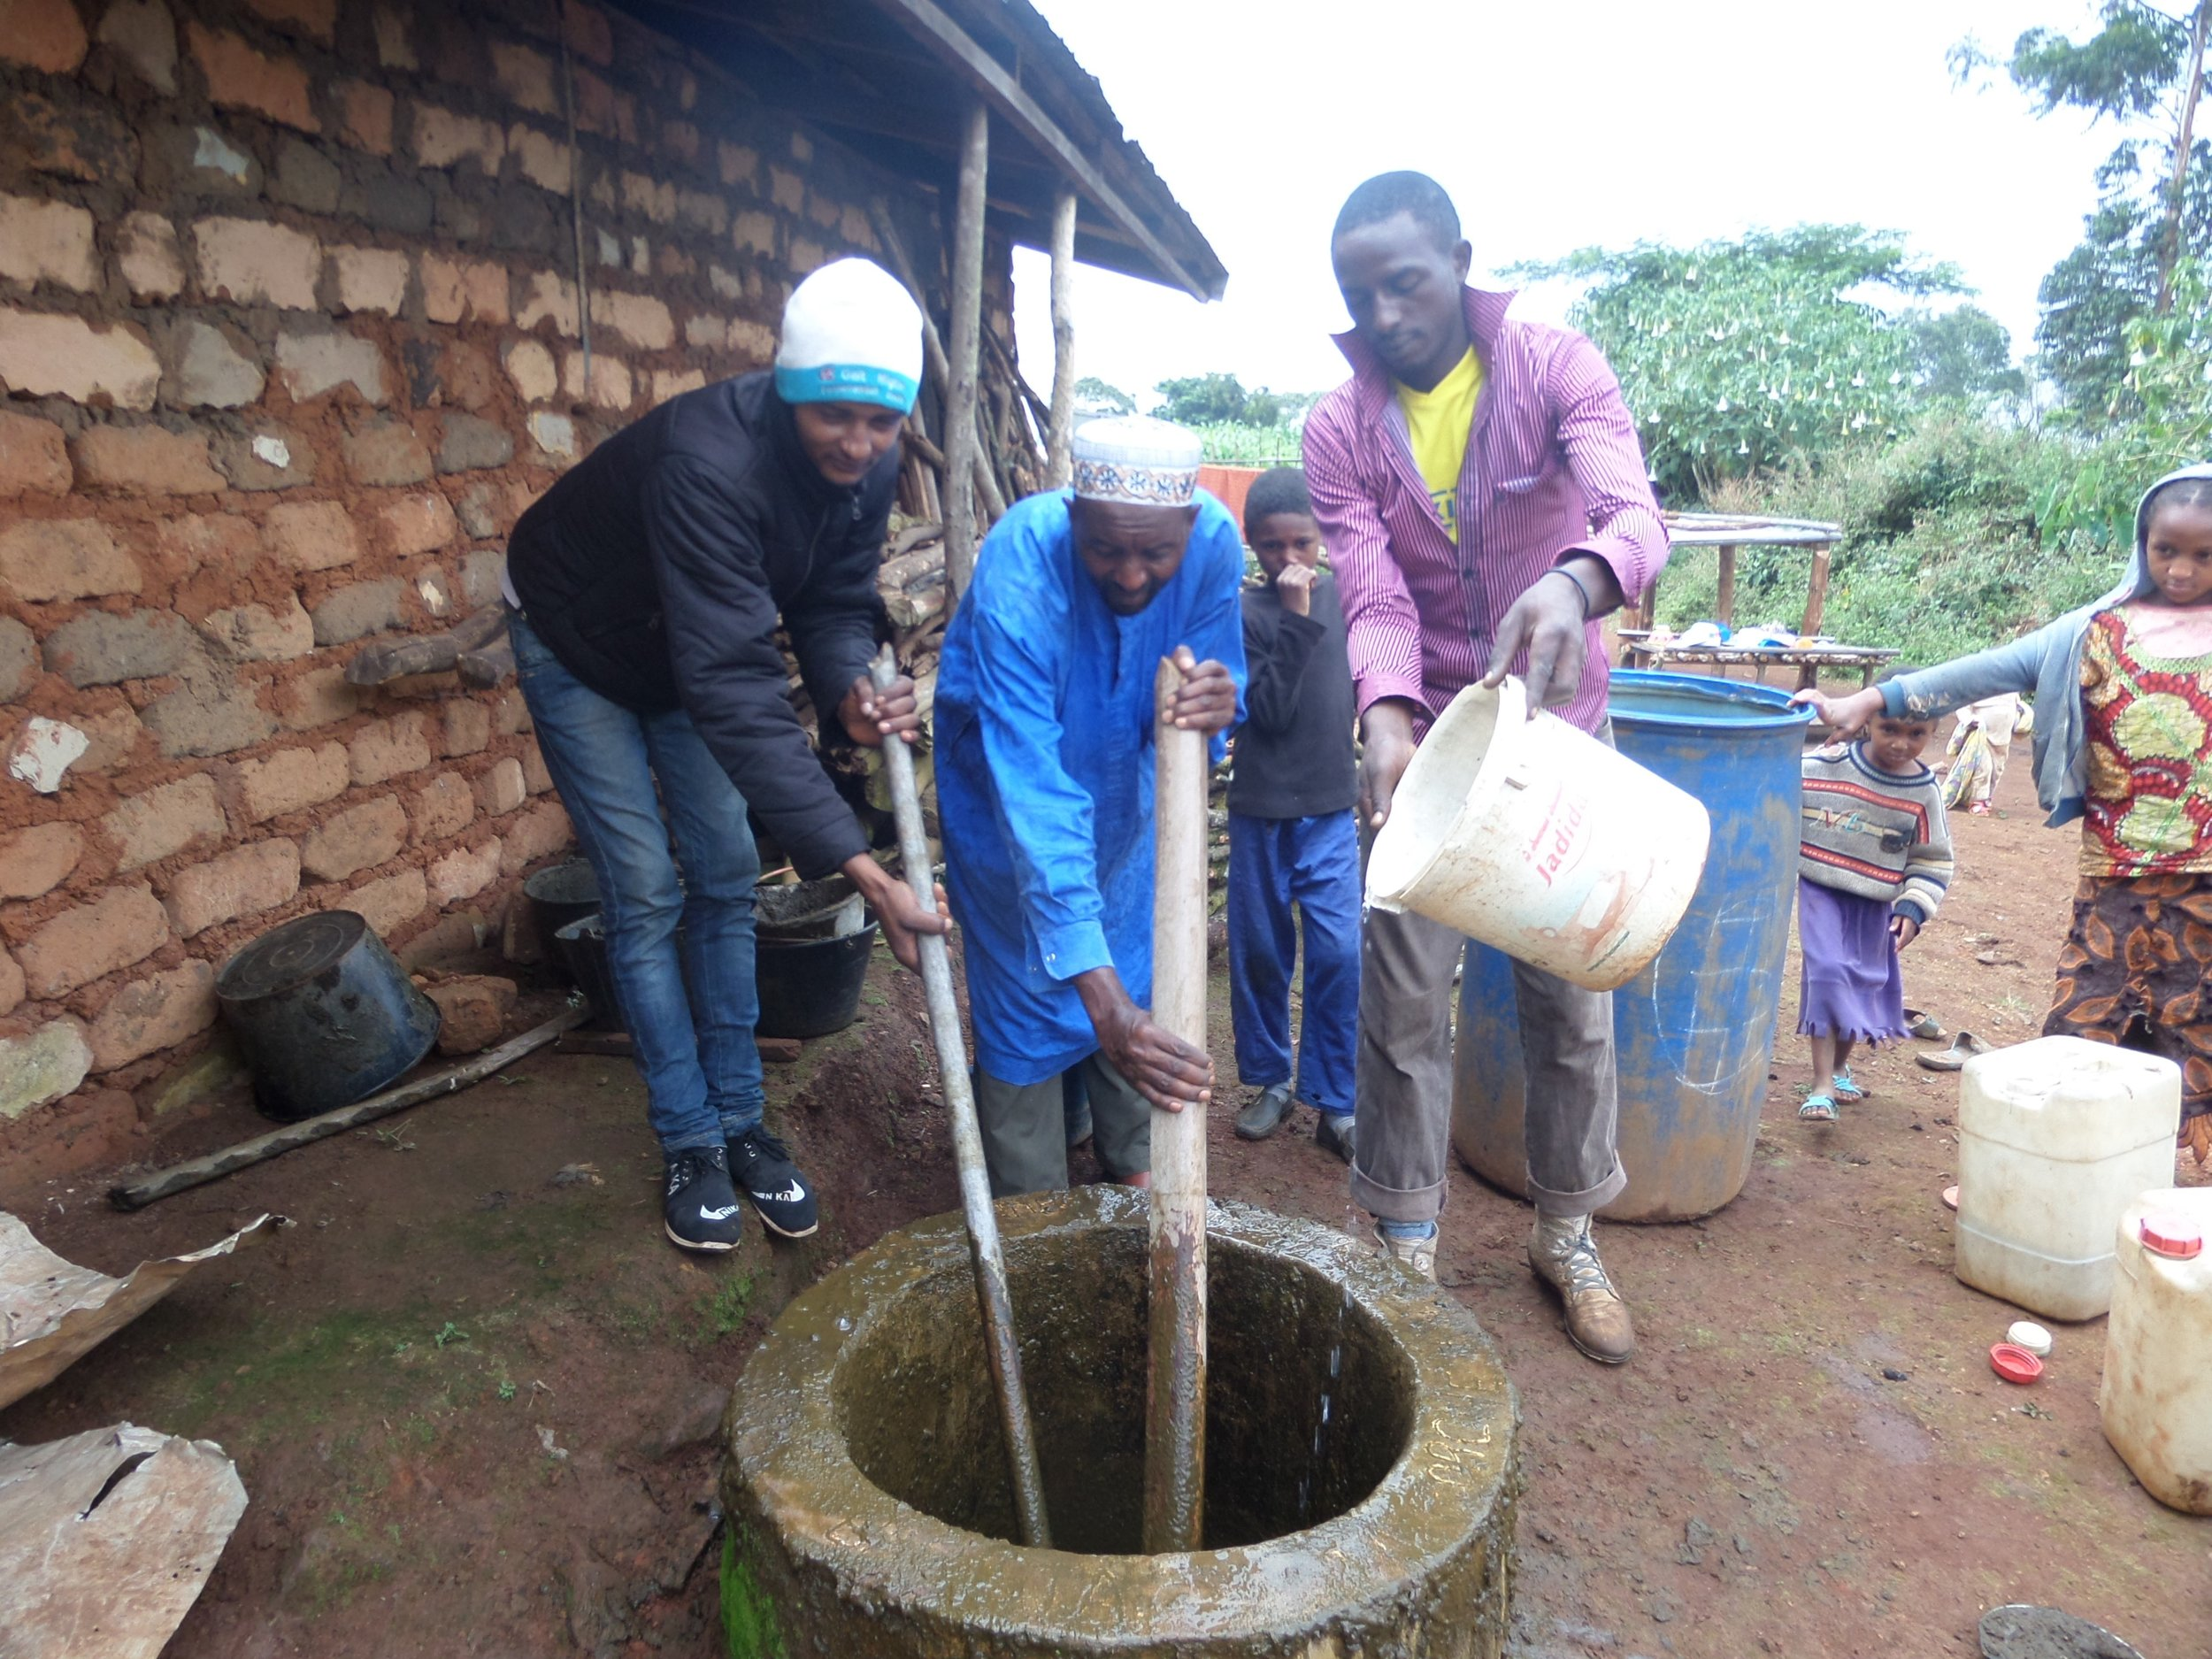 Alhadji (centre) tending to his biogas system. As president of his local Dialogue Platform, he also takes a central position in mediating disputes in his community.